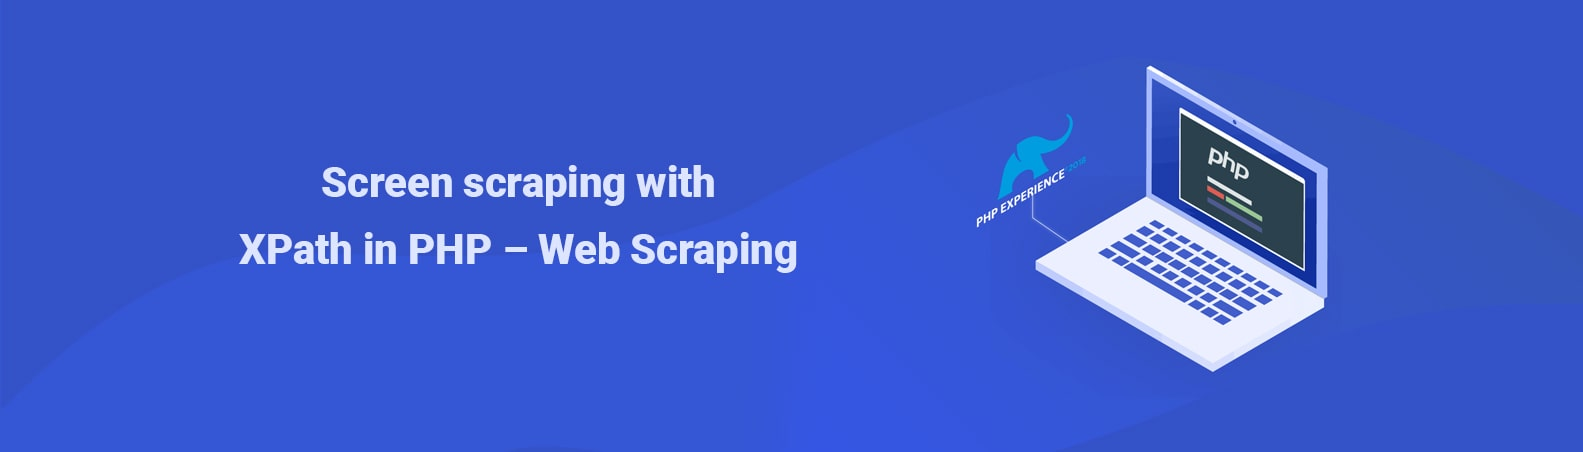 Screen scraping with XPath in PHP - Web Scraping | 2Base Technologies